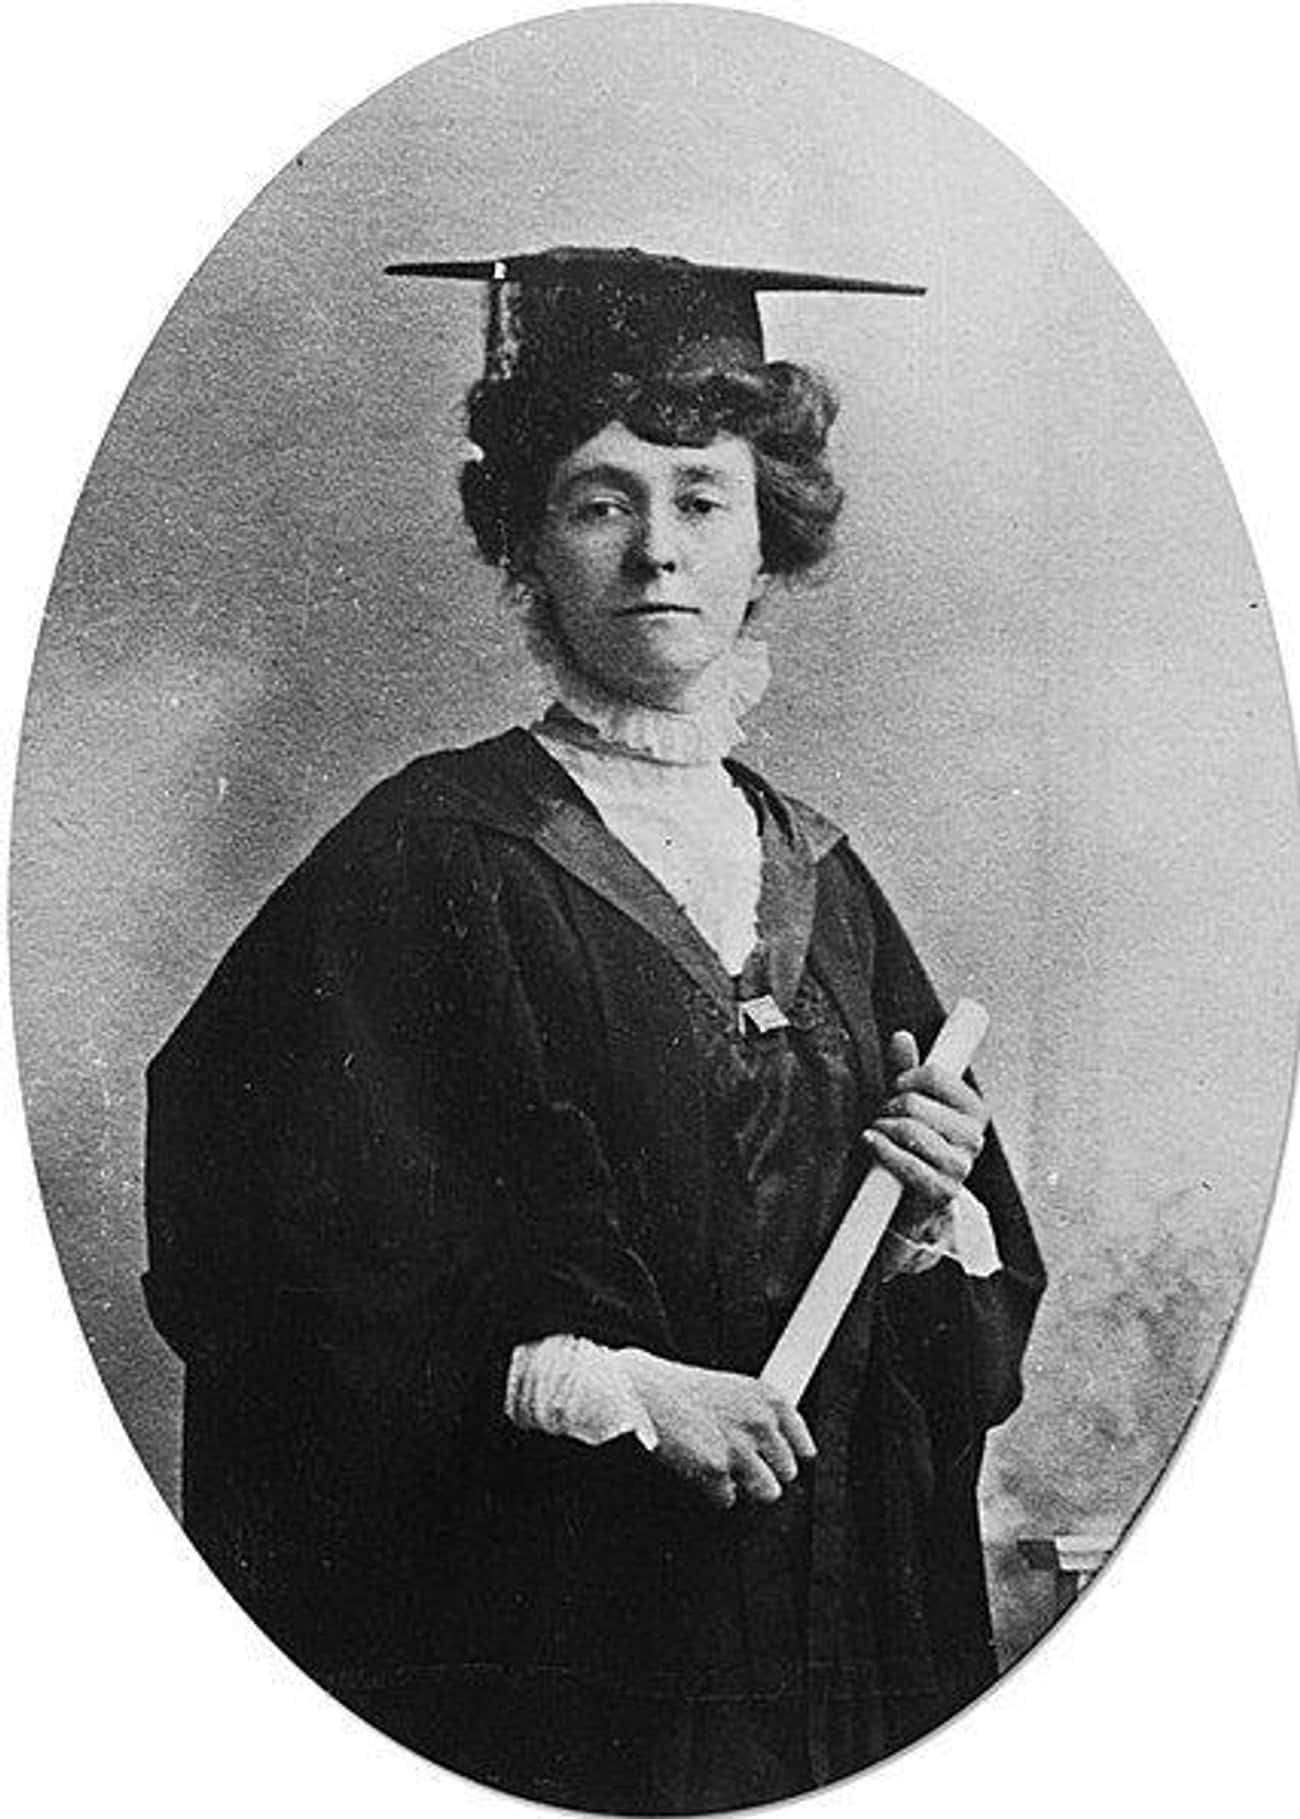 Emily Davison Didn't Immed is listed (or ranked) 3 on the list The Shocking Moment A Women's Rights Activist Sacrificed Her Life By Horse Stomping